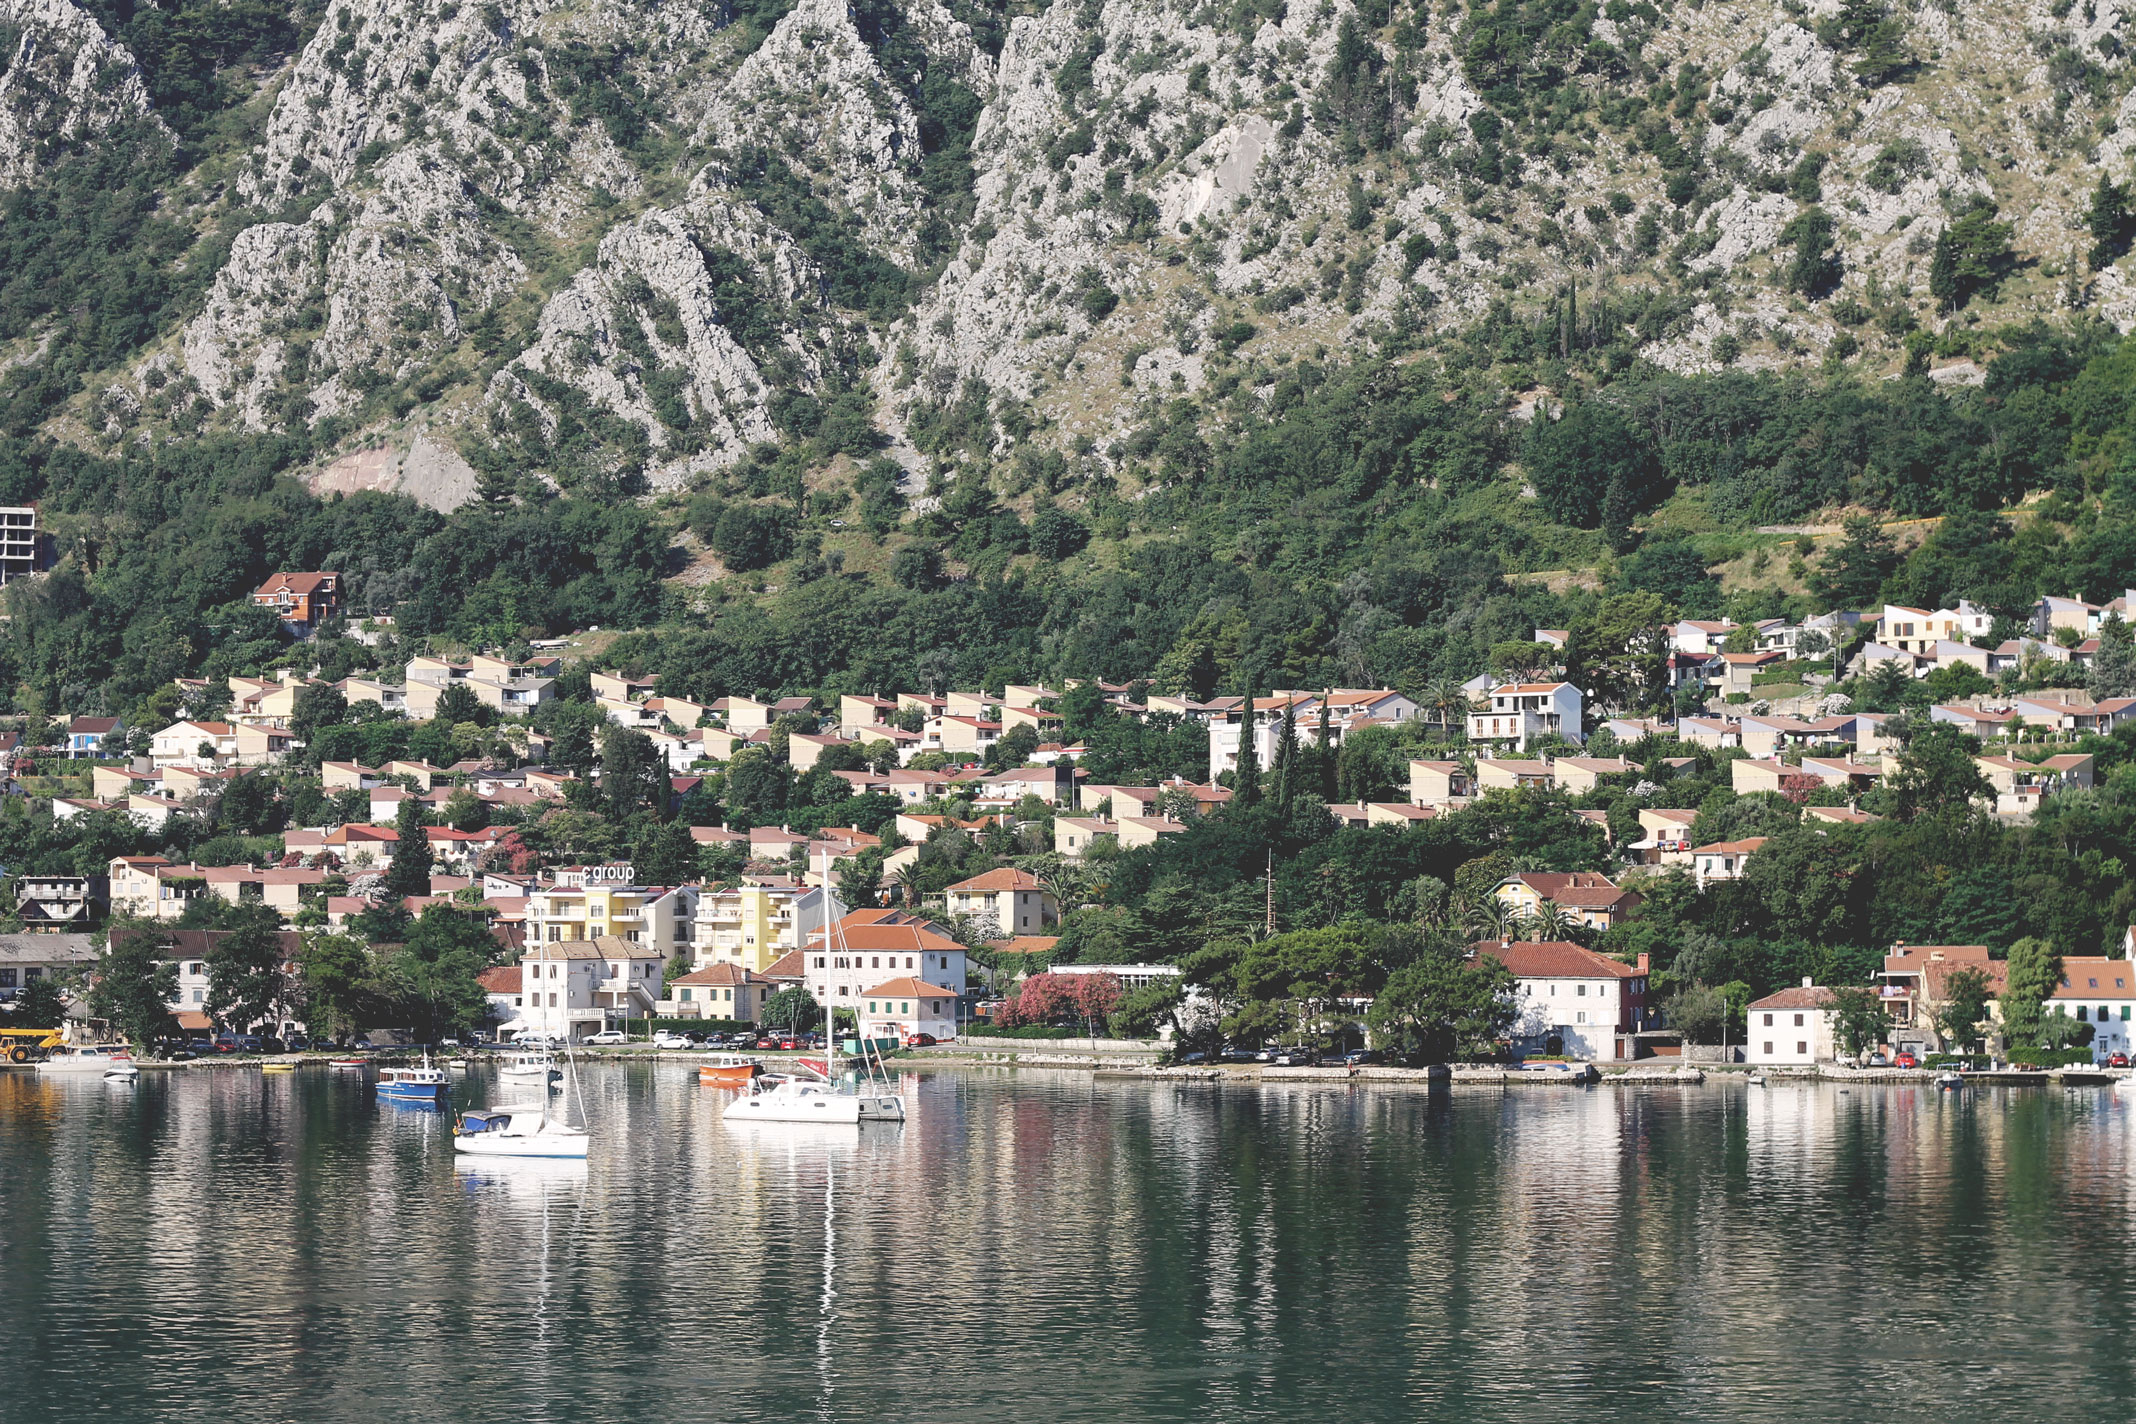 Styleat30 Cruise - How to Spend One Day in Kotor, Montenegro - Travel Blog 01